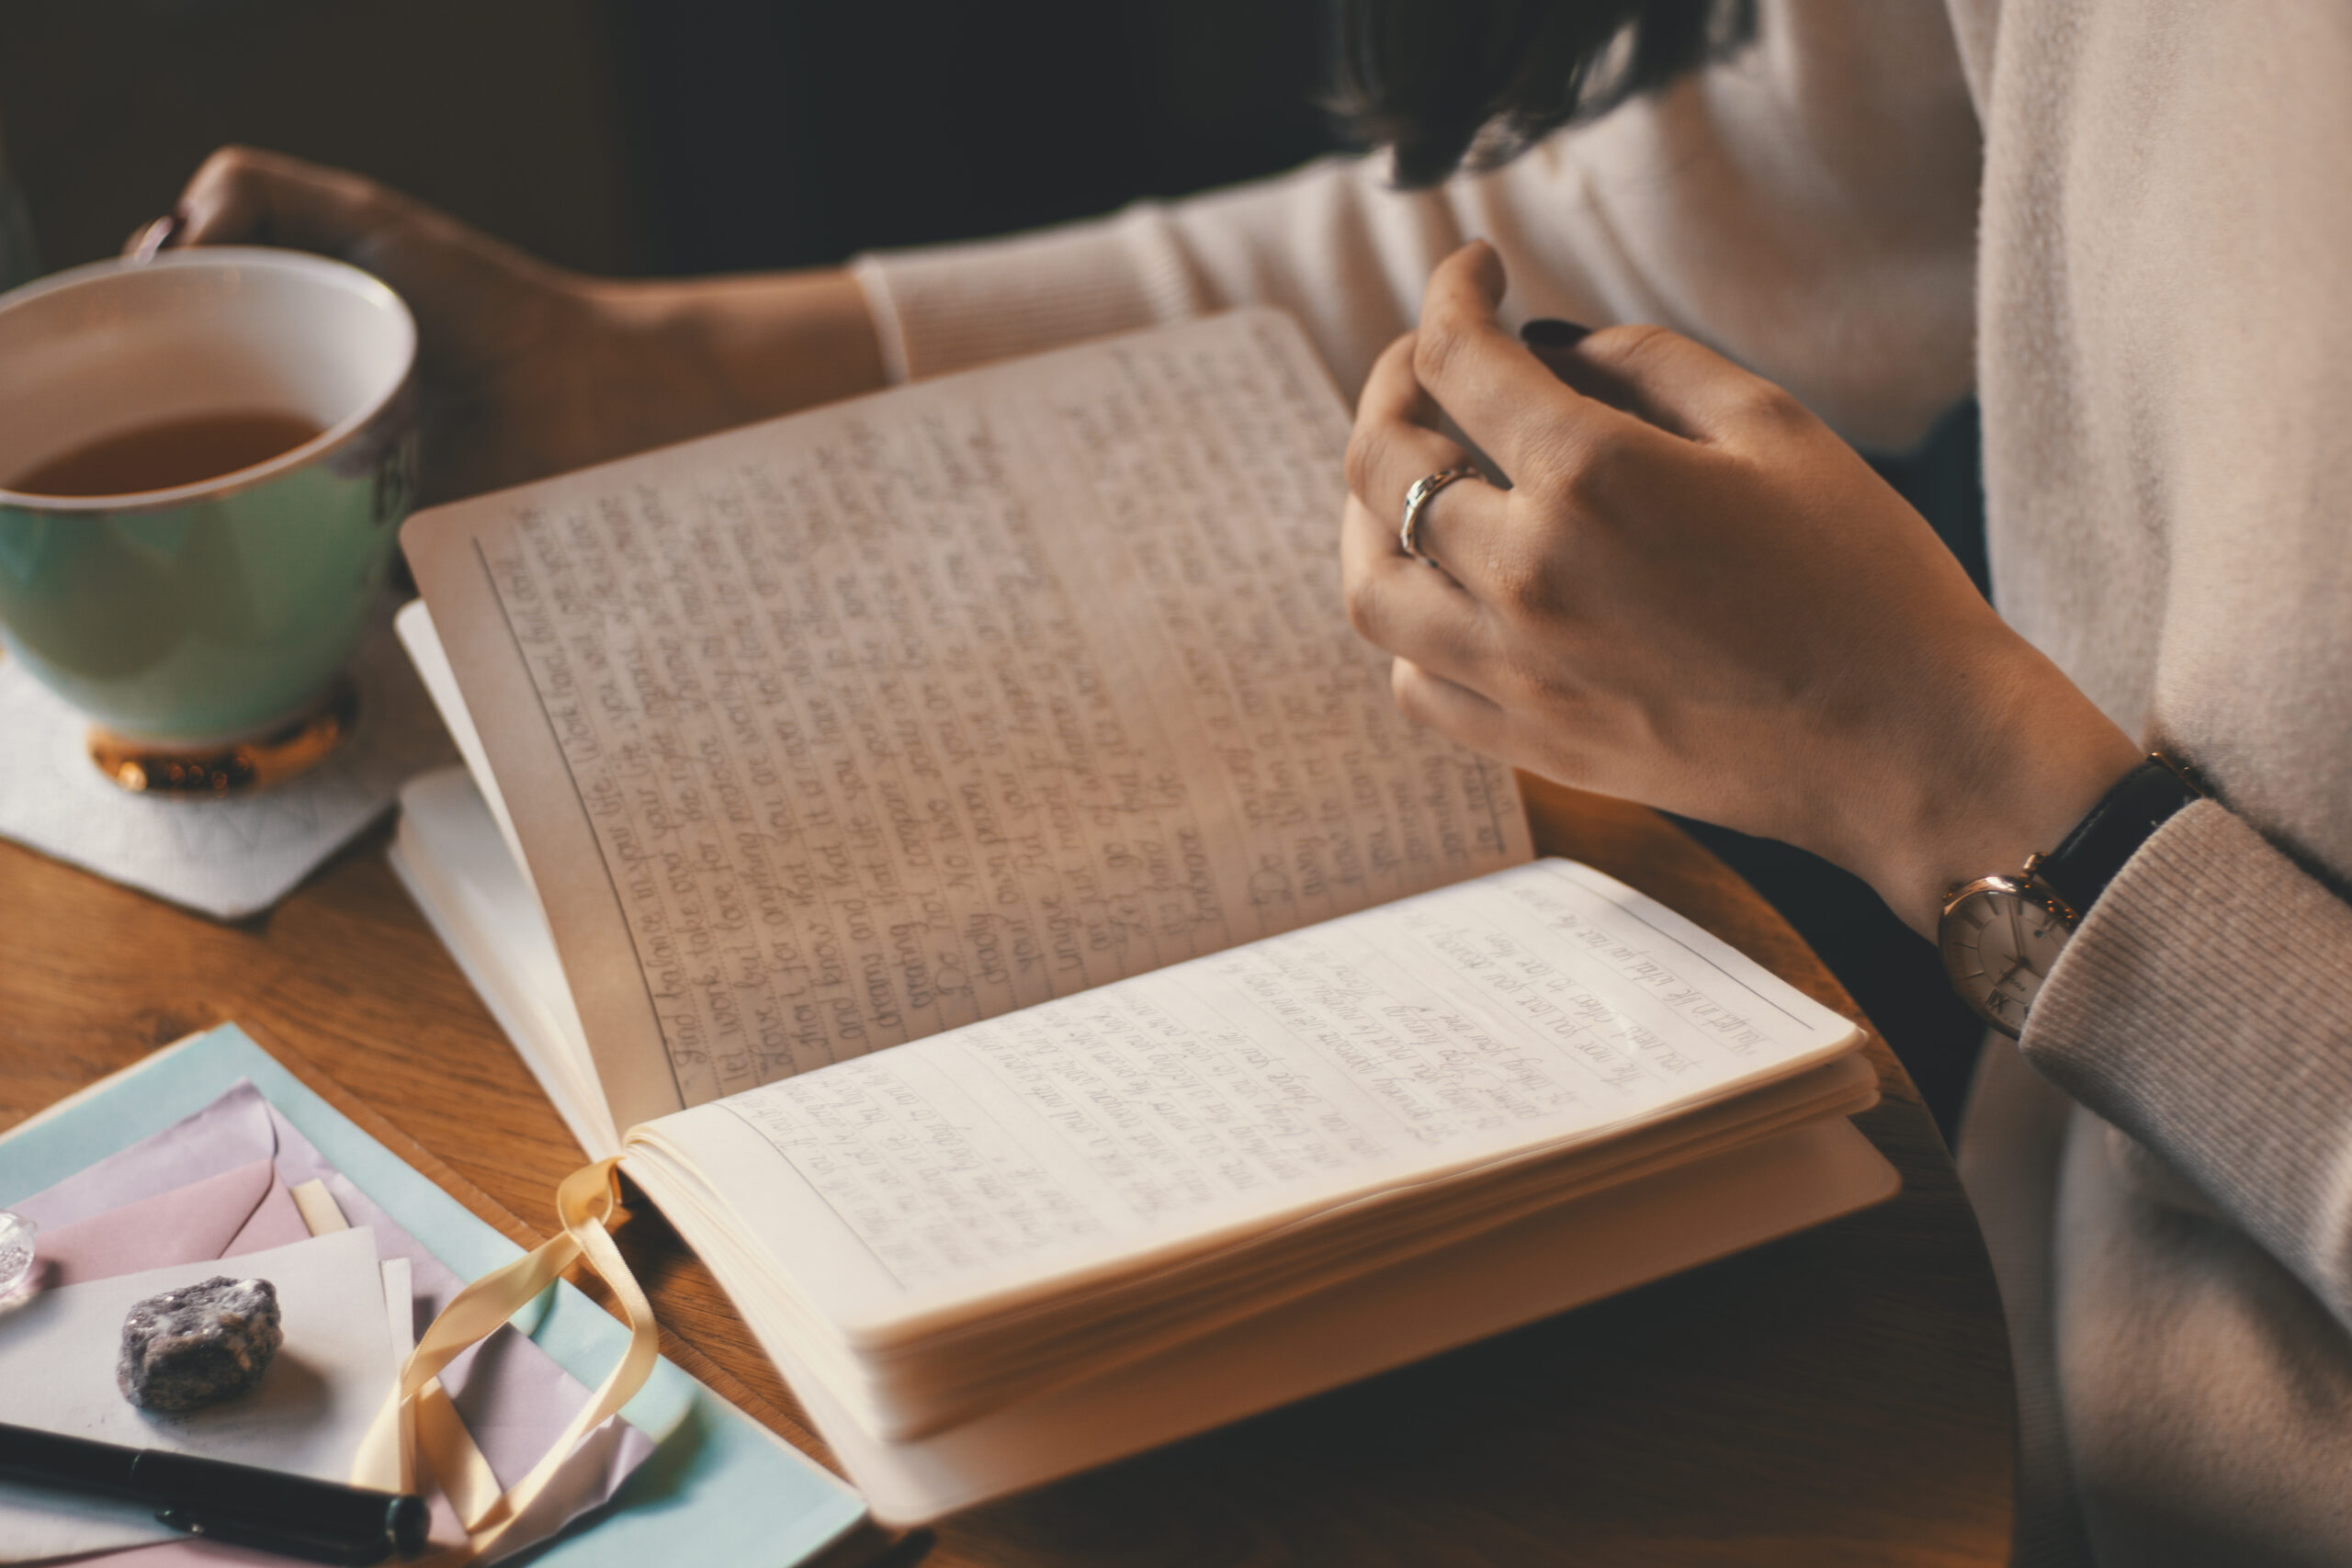 Andreea-Prodan-Benefits-of-journaling-scaled PERSONAL GROWTH